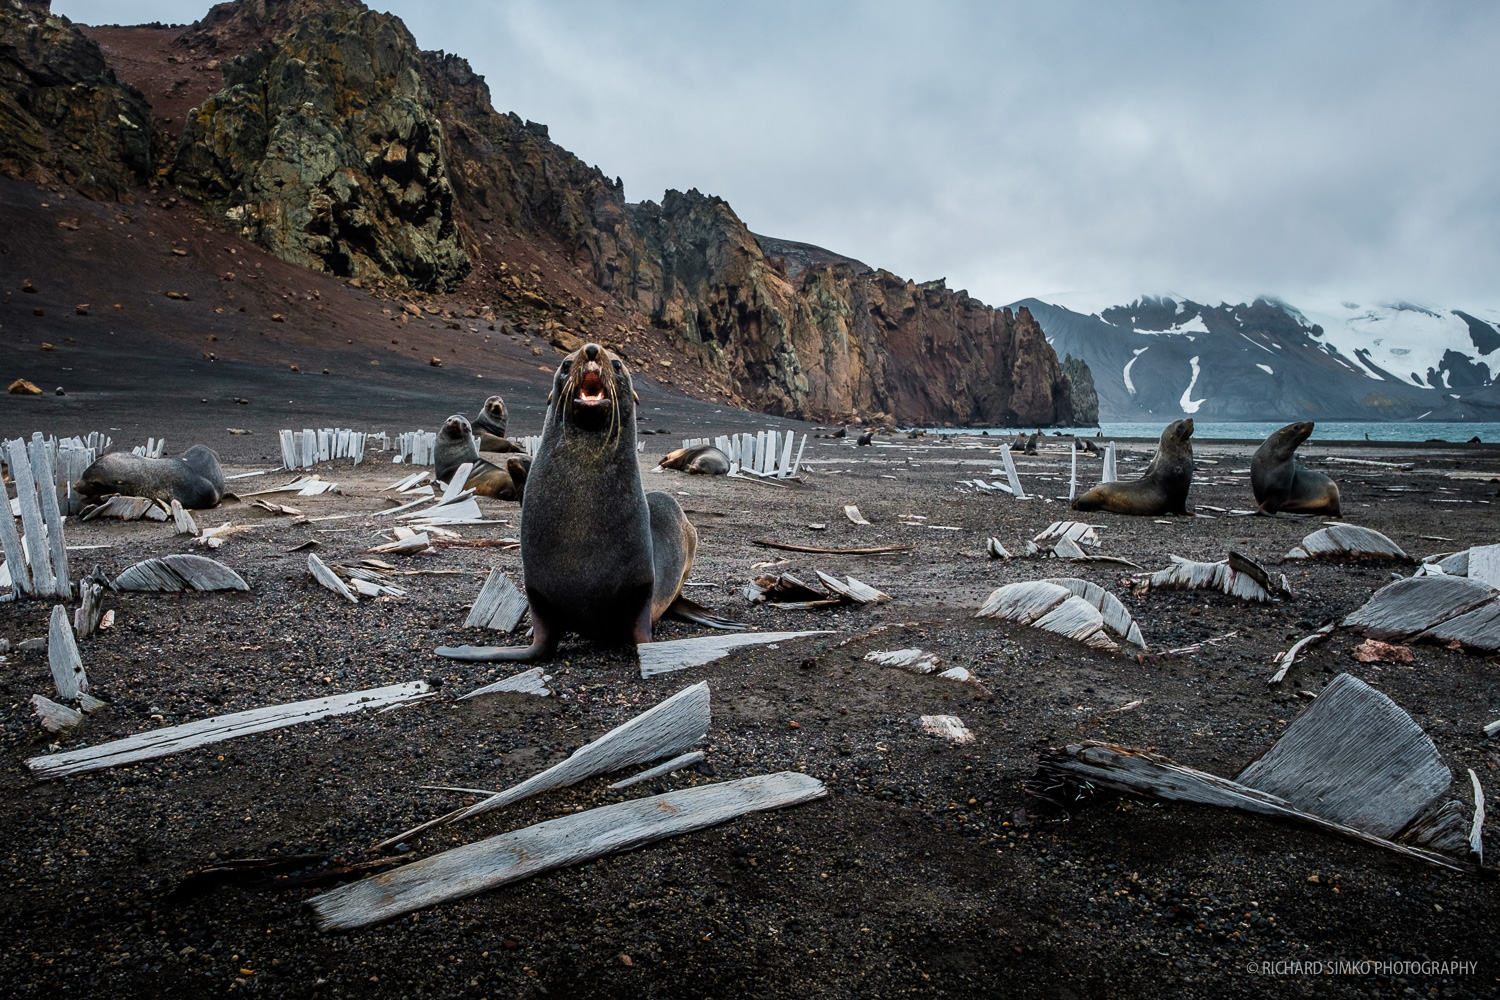 Fur seals on the Deception Island made their resting place among whale bones and old decaying structures of former whalers station.